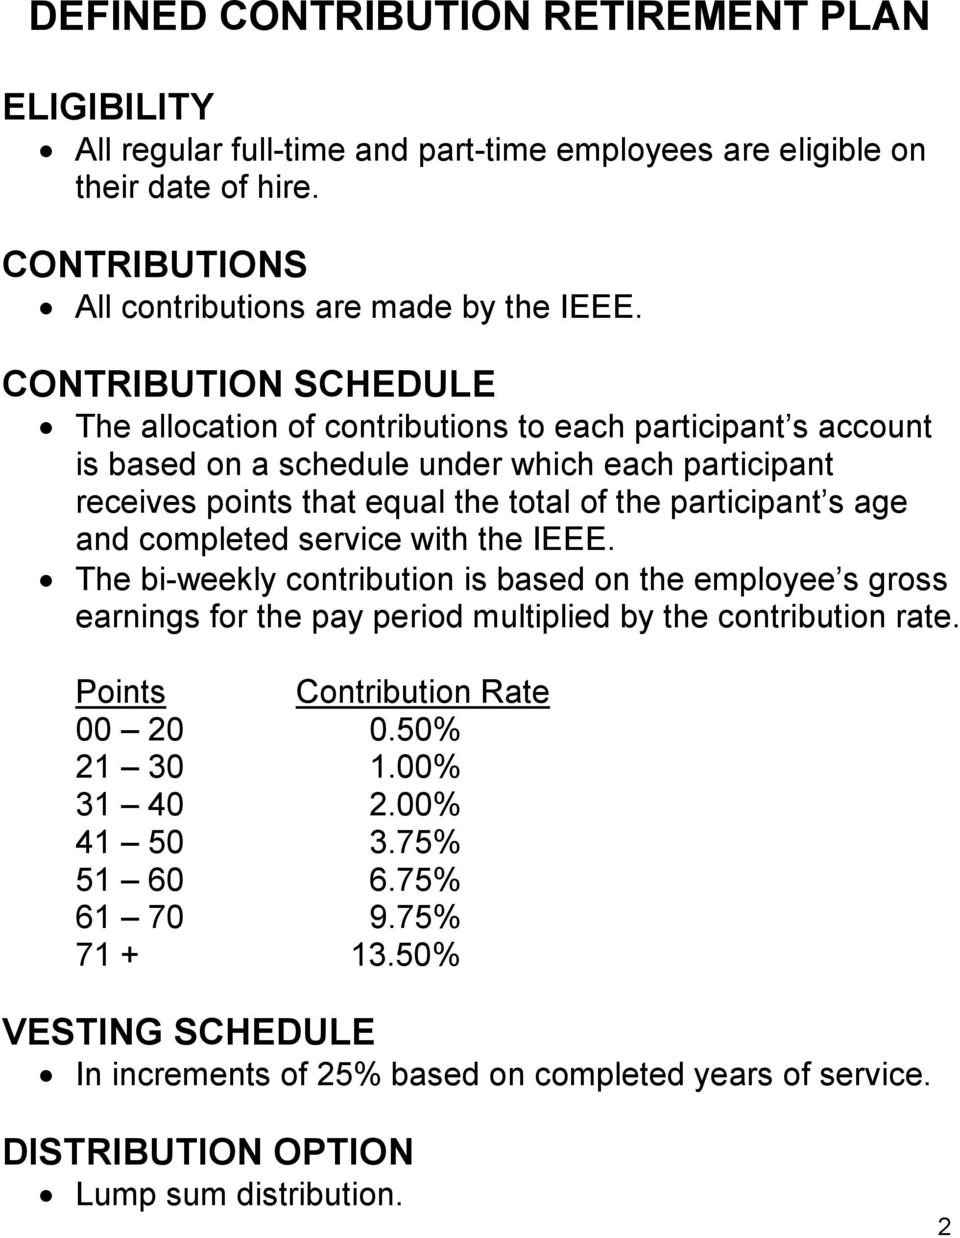 age and completed service with the IEEE. The bi-weekly contribution is based on the employee s gross earnings for the pay period multiplied by the contribution rate.